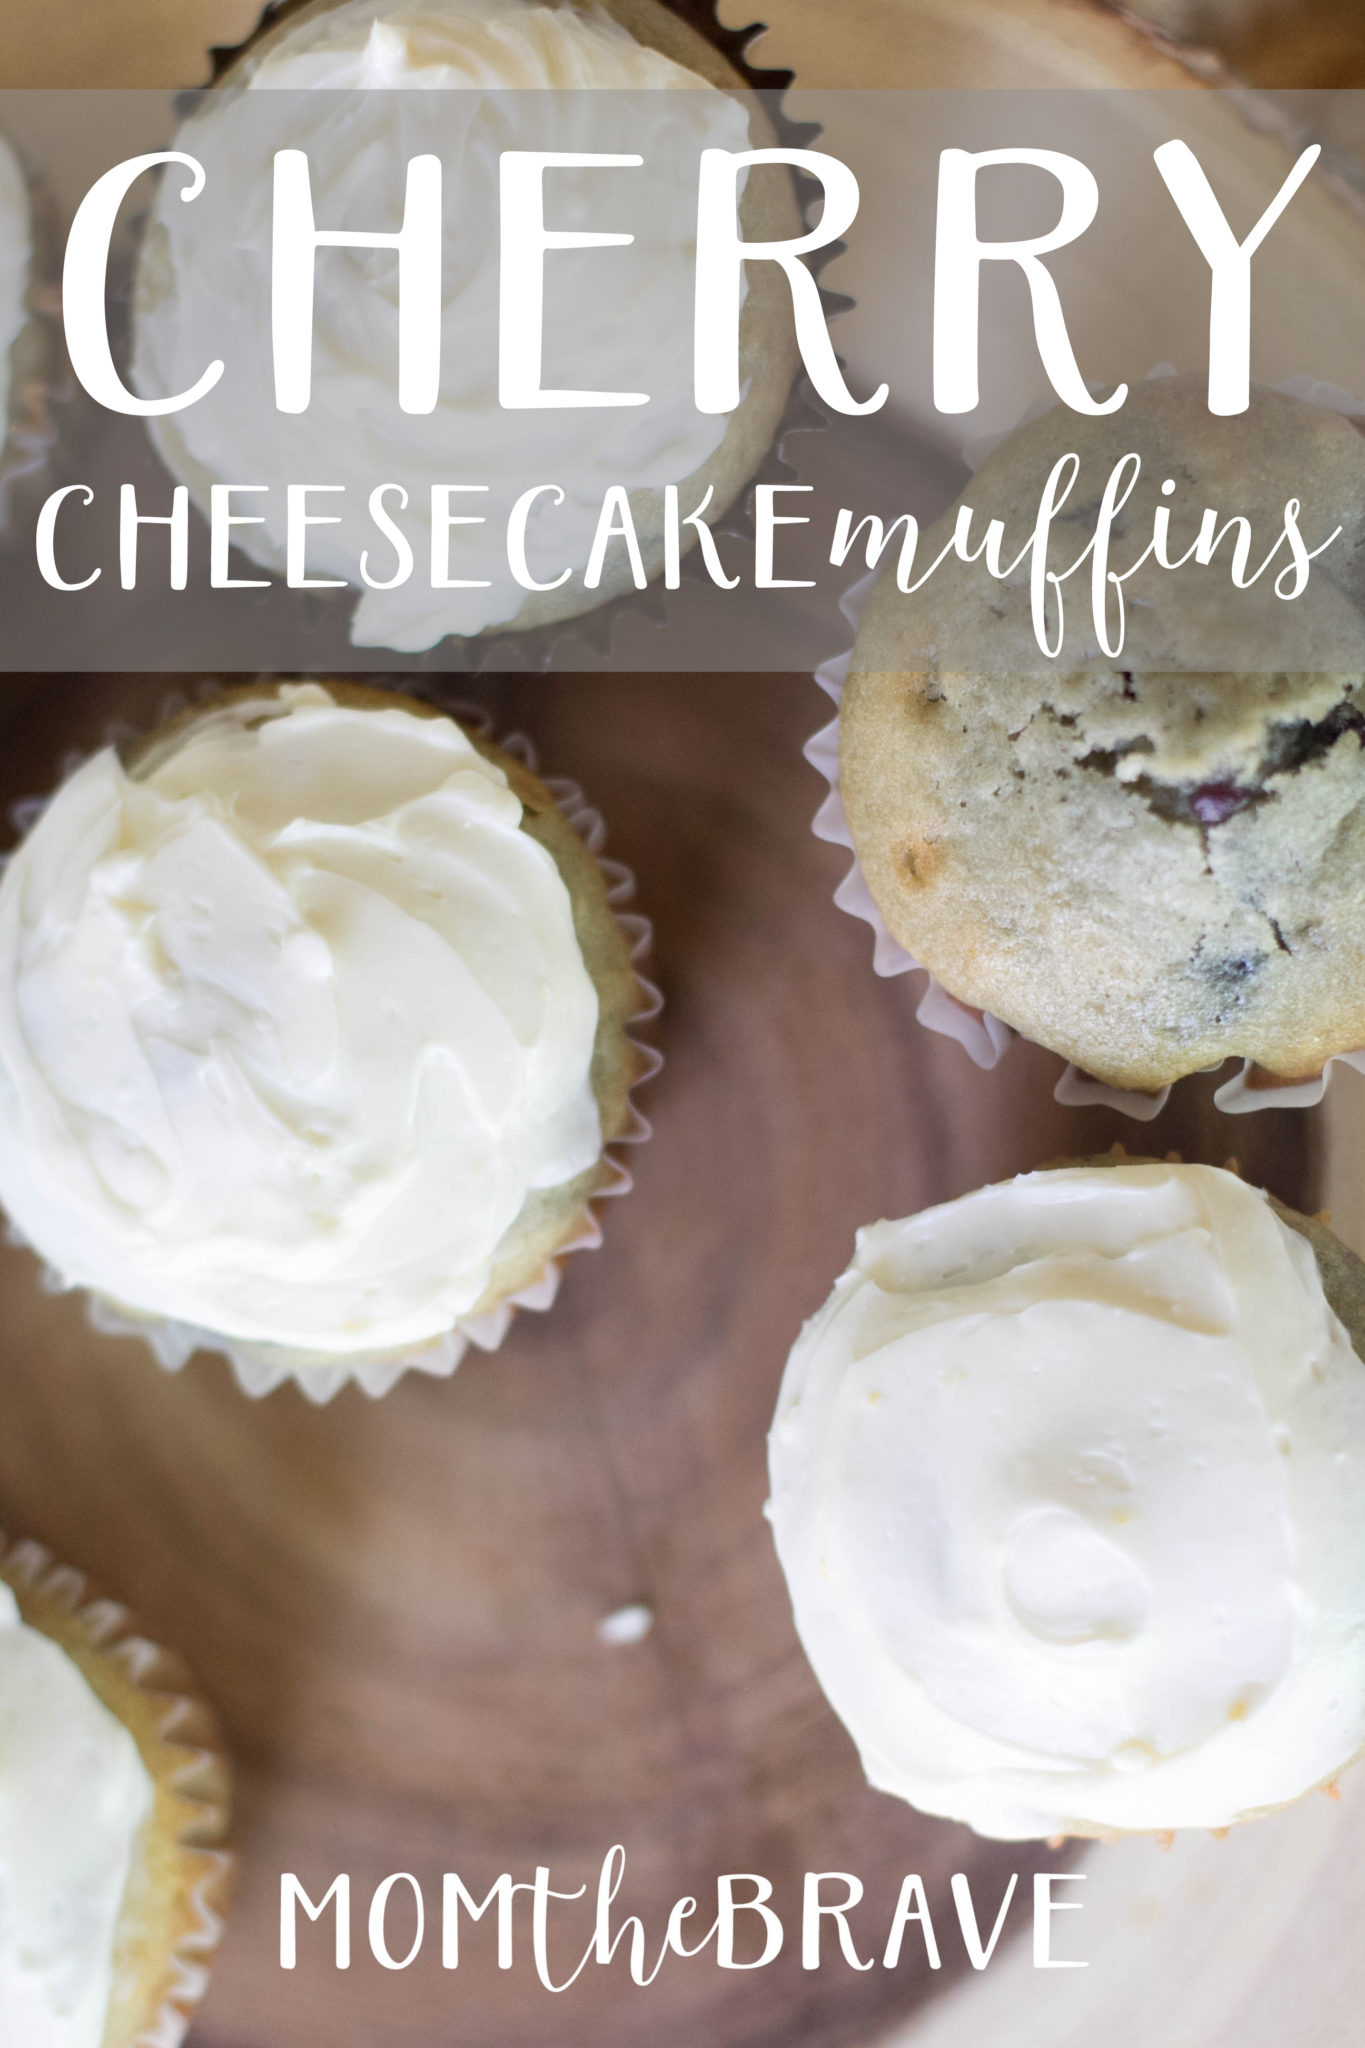 Cherry Cheesecake Muffins: A Lesson in Perfectionism